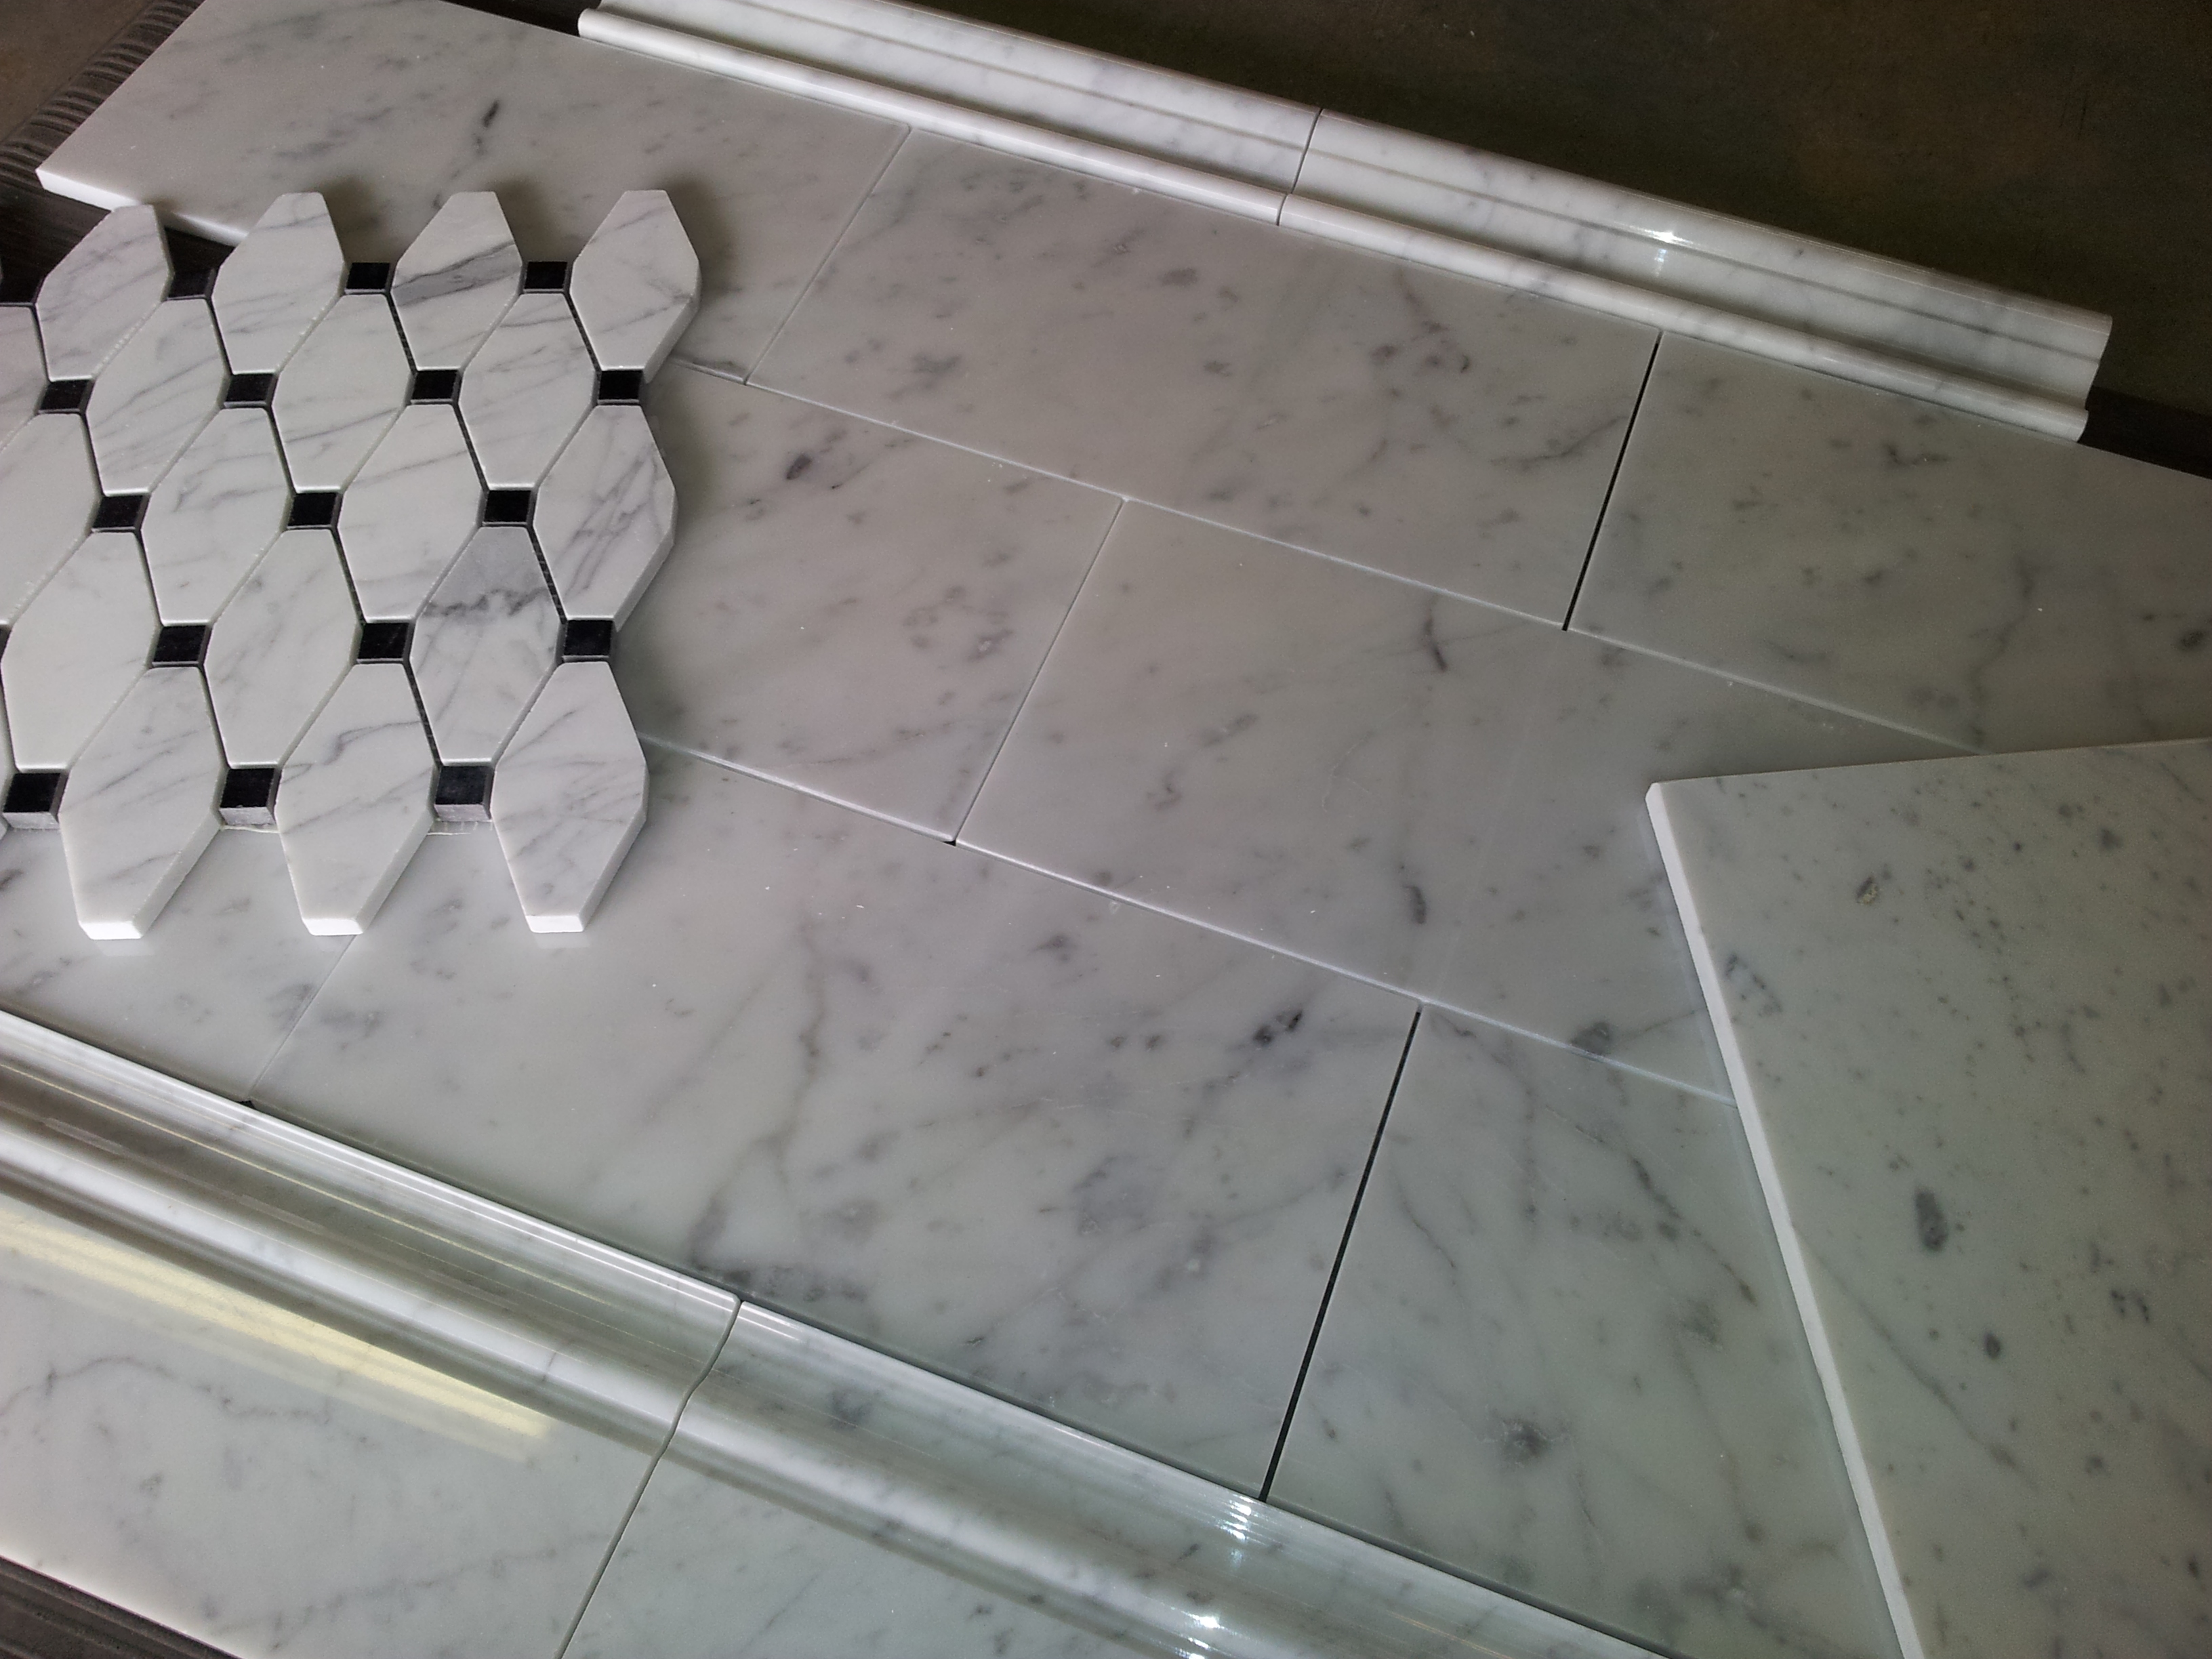 $8SF Carrara Bianco Subway Tile Marble Skirting & Chair Rail